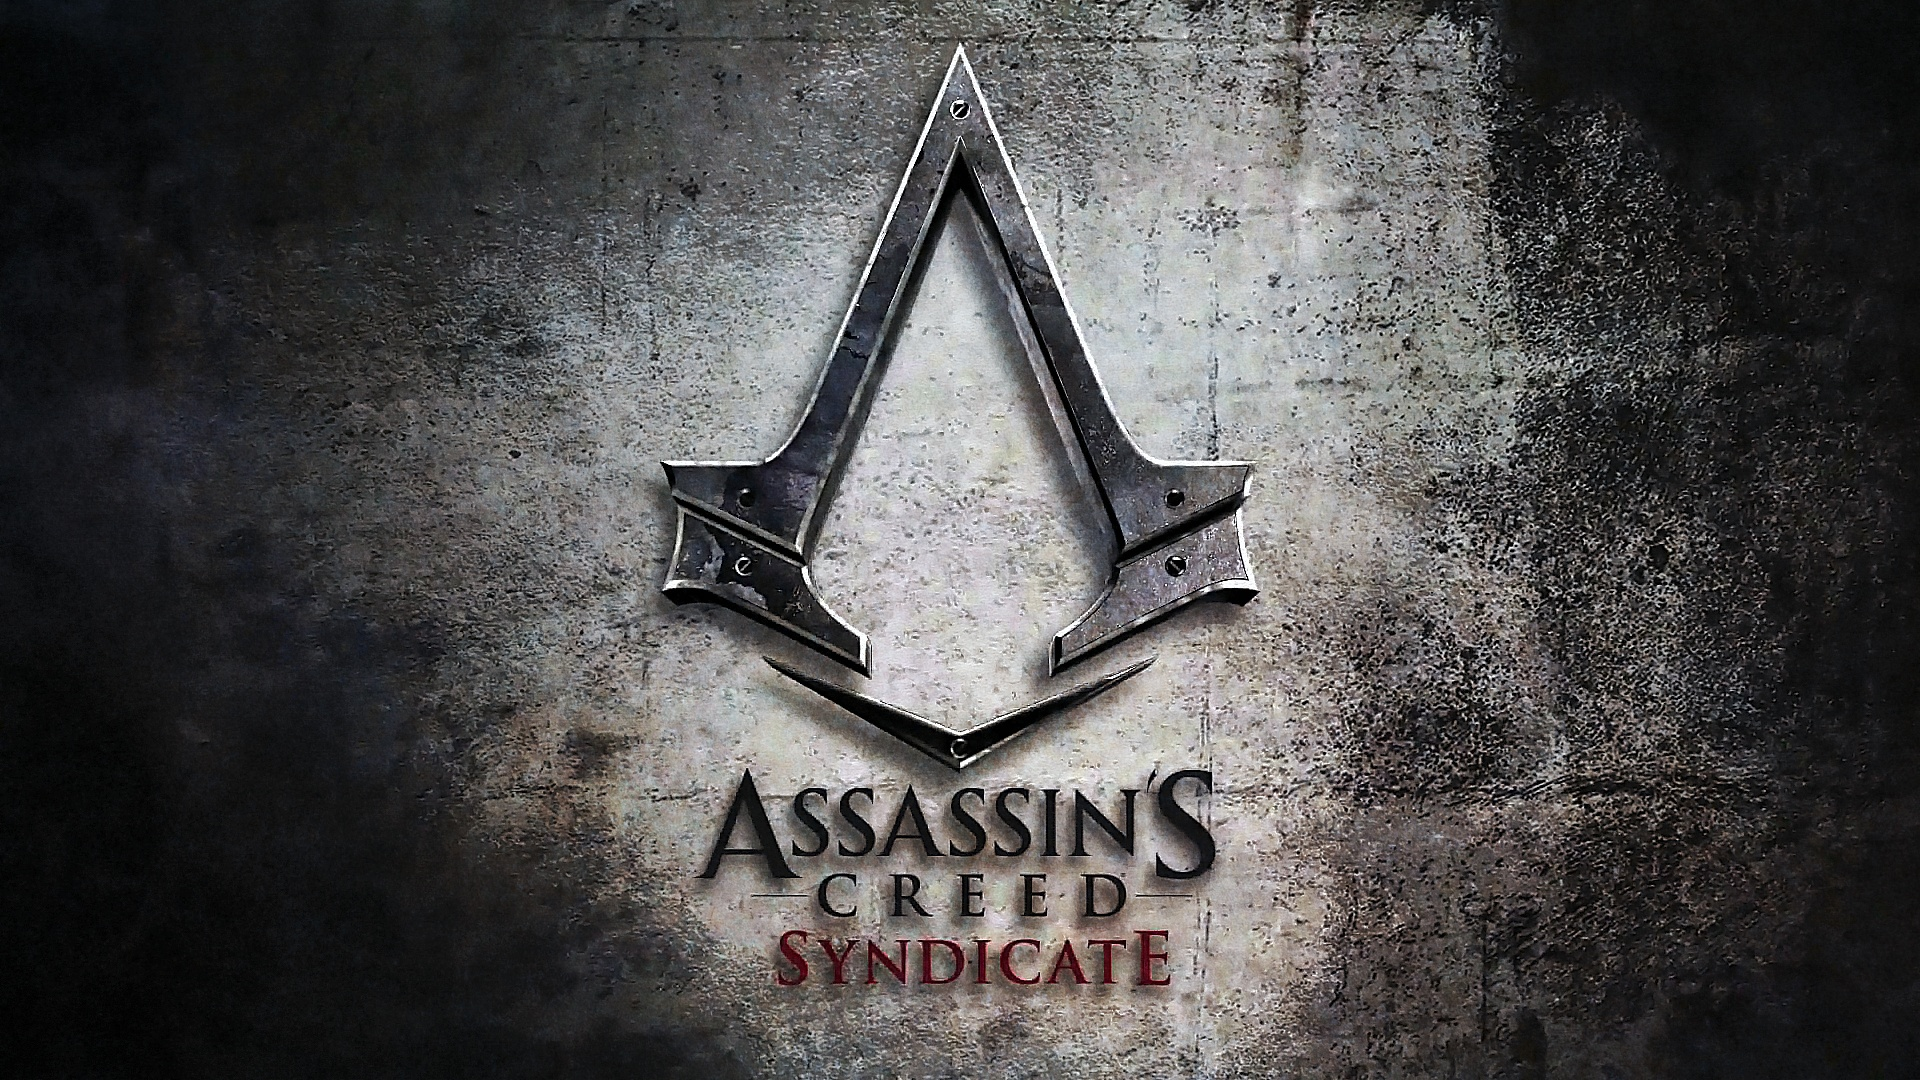 assassins_creed_syndicate-logo-wallpaper-1920x1080